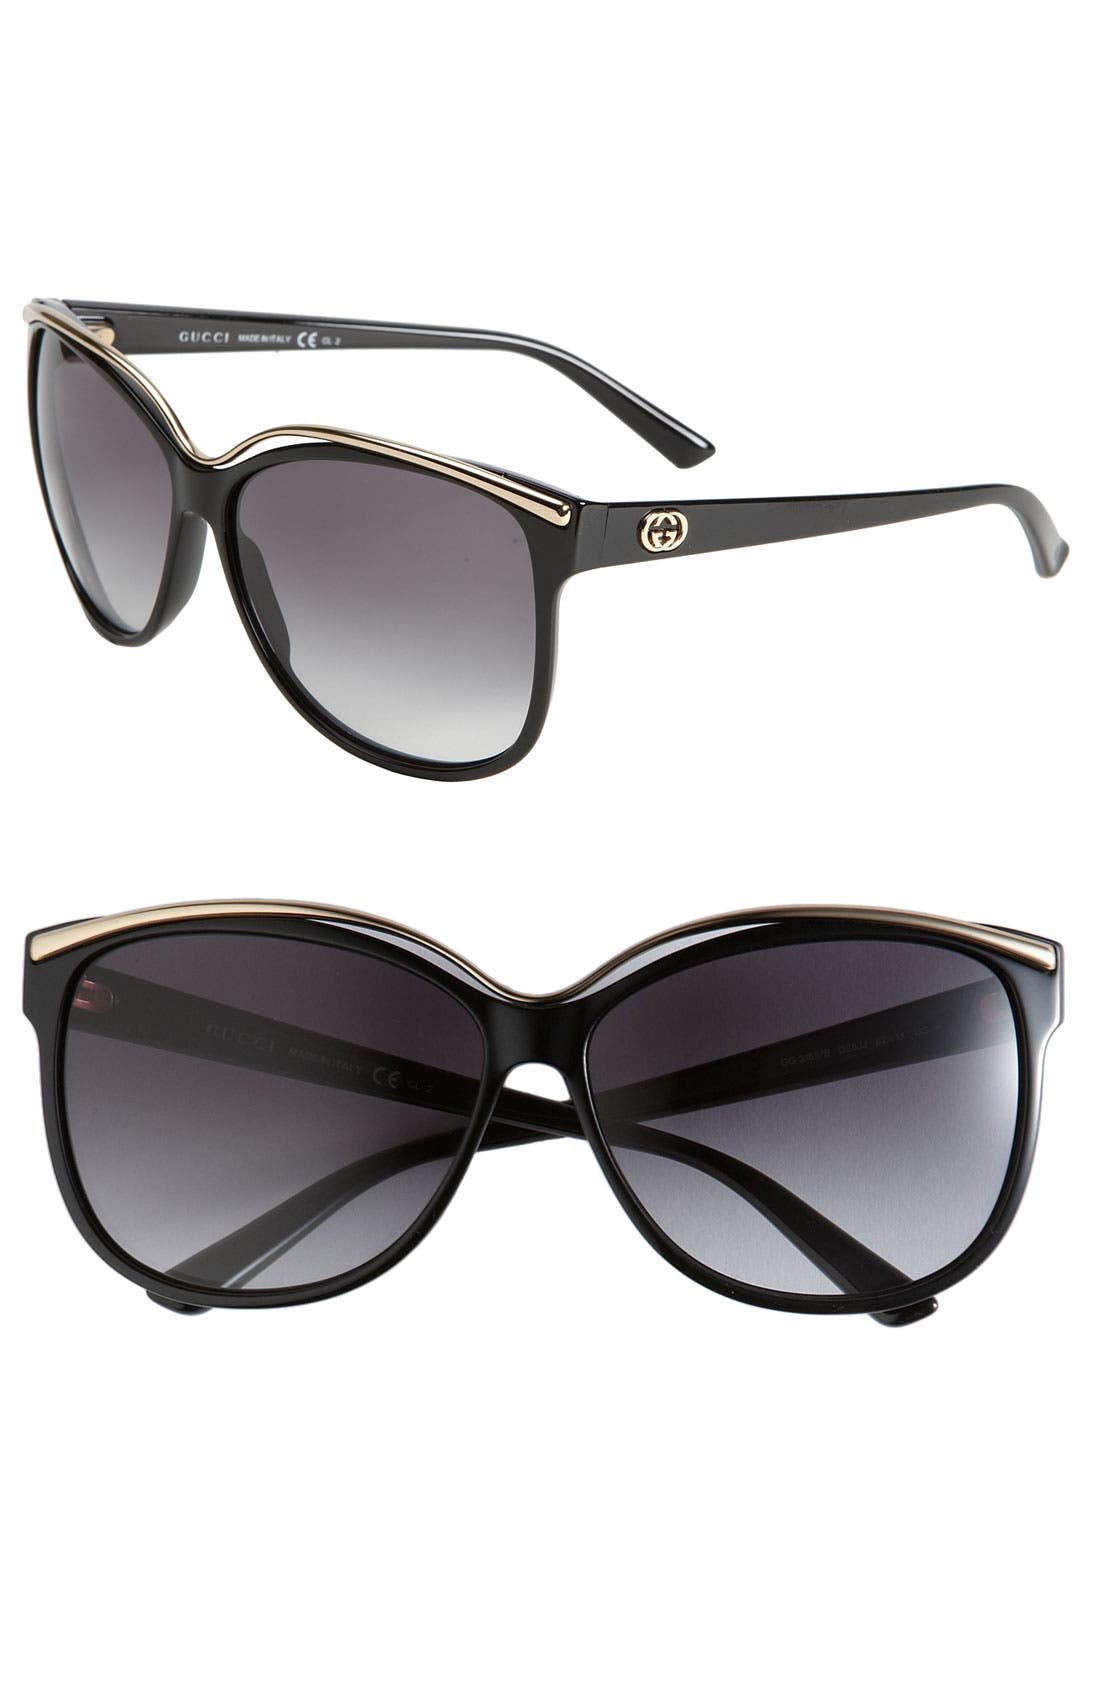 Main Image - Gucci 62mm Cat Eye Sunglasses